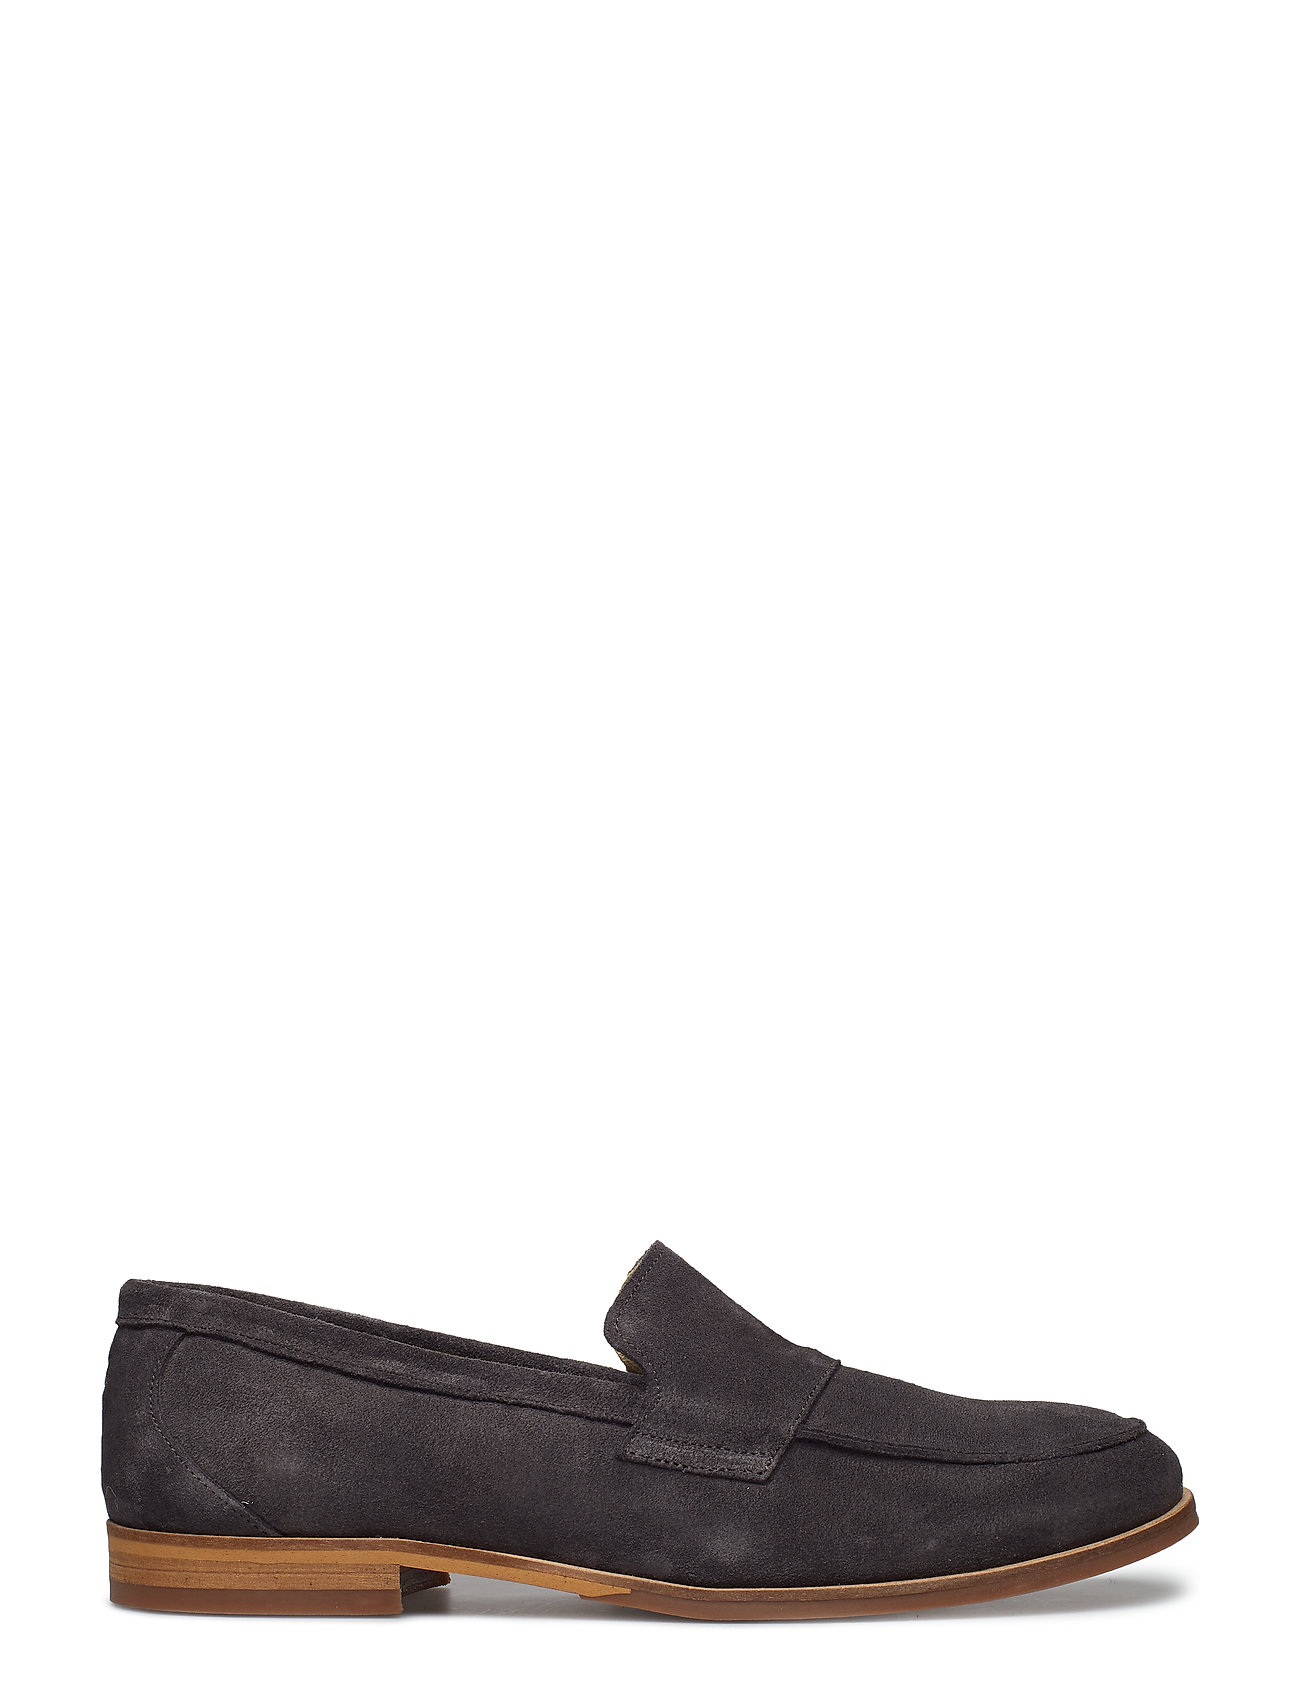 Image of Dylan S Loafers Flade Sko Sort Shoe The Bear (3431426691)